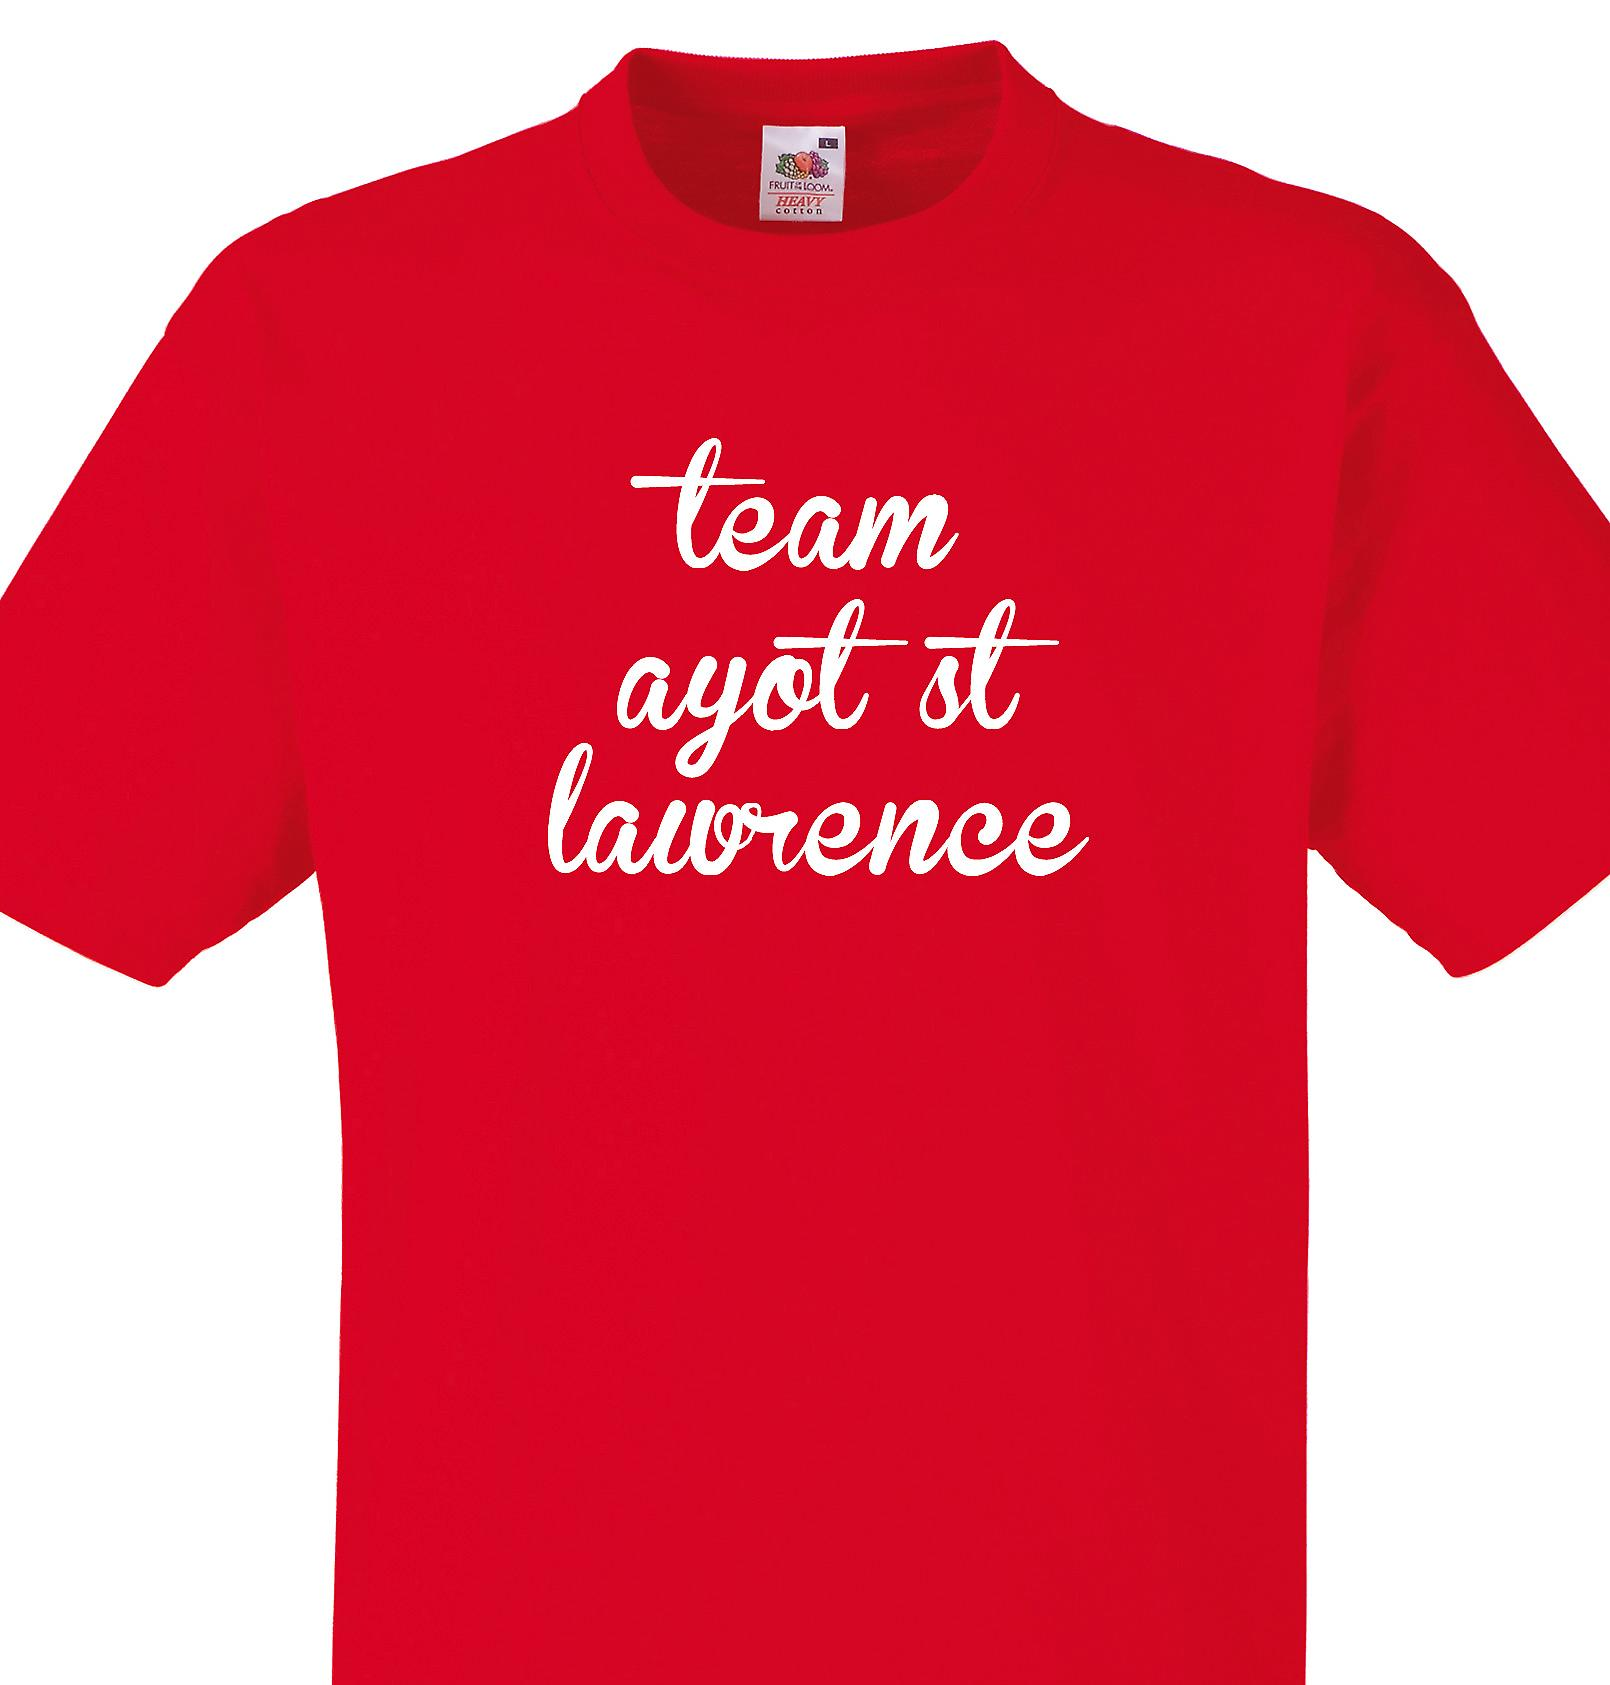 Team Ayot st lawrence Red T shirt